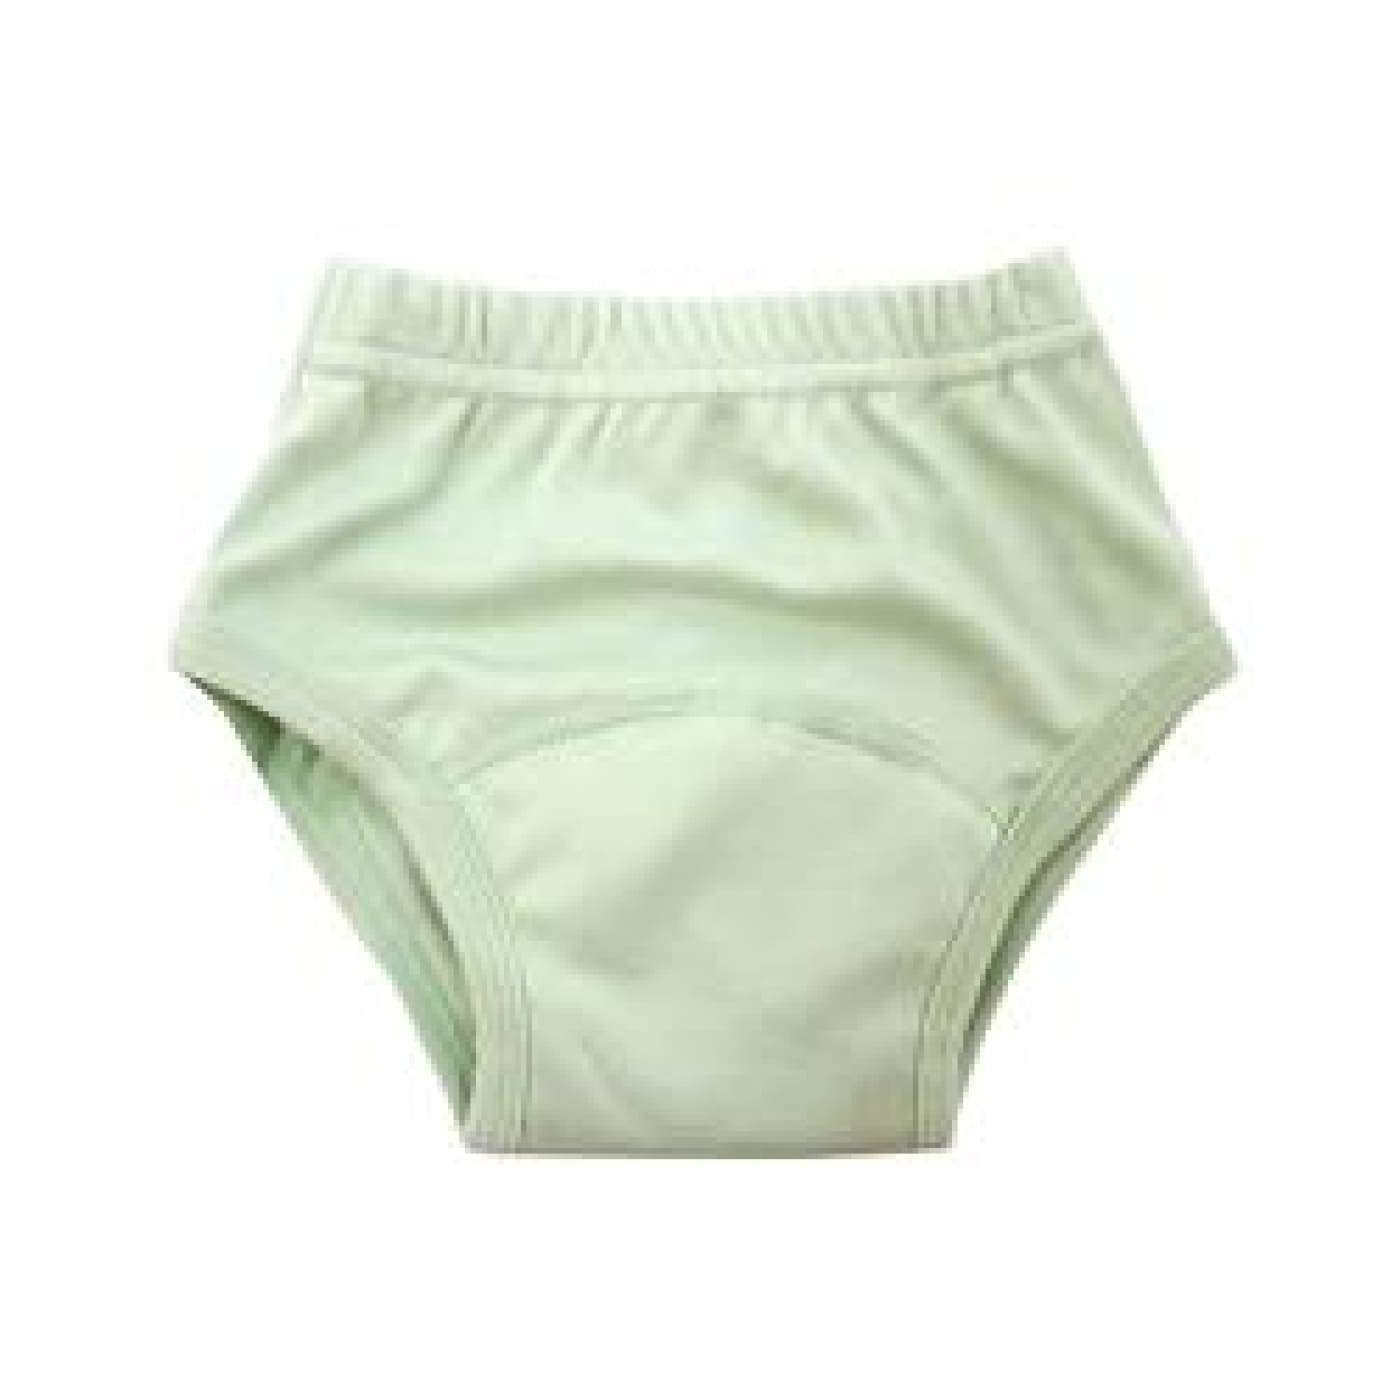 Pea Pods Training Pants Large - Pea Green - BATHTIME & CHANGING - NAPPIES/WIPES/ACC ECO RANGE